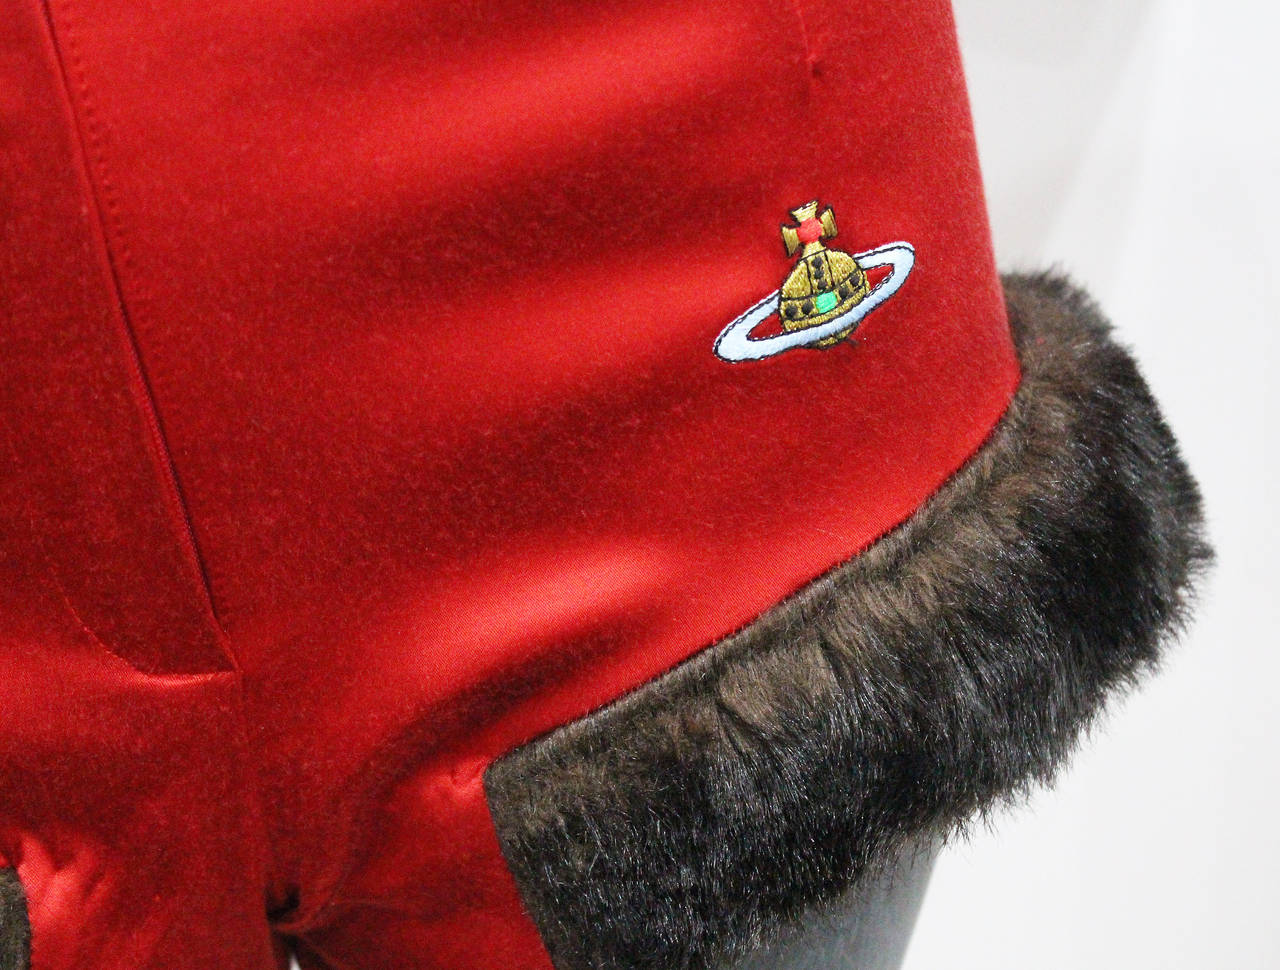 Very rare Vivienne Westwood 90s hot pants in red satin with brown faux fur trim. 